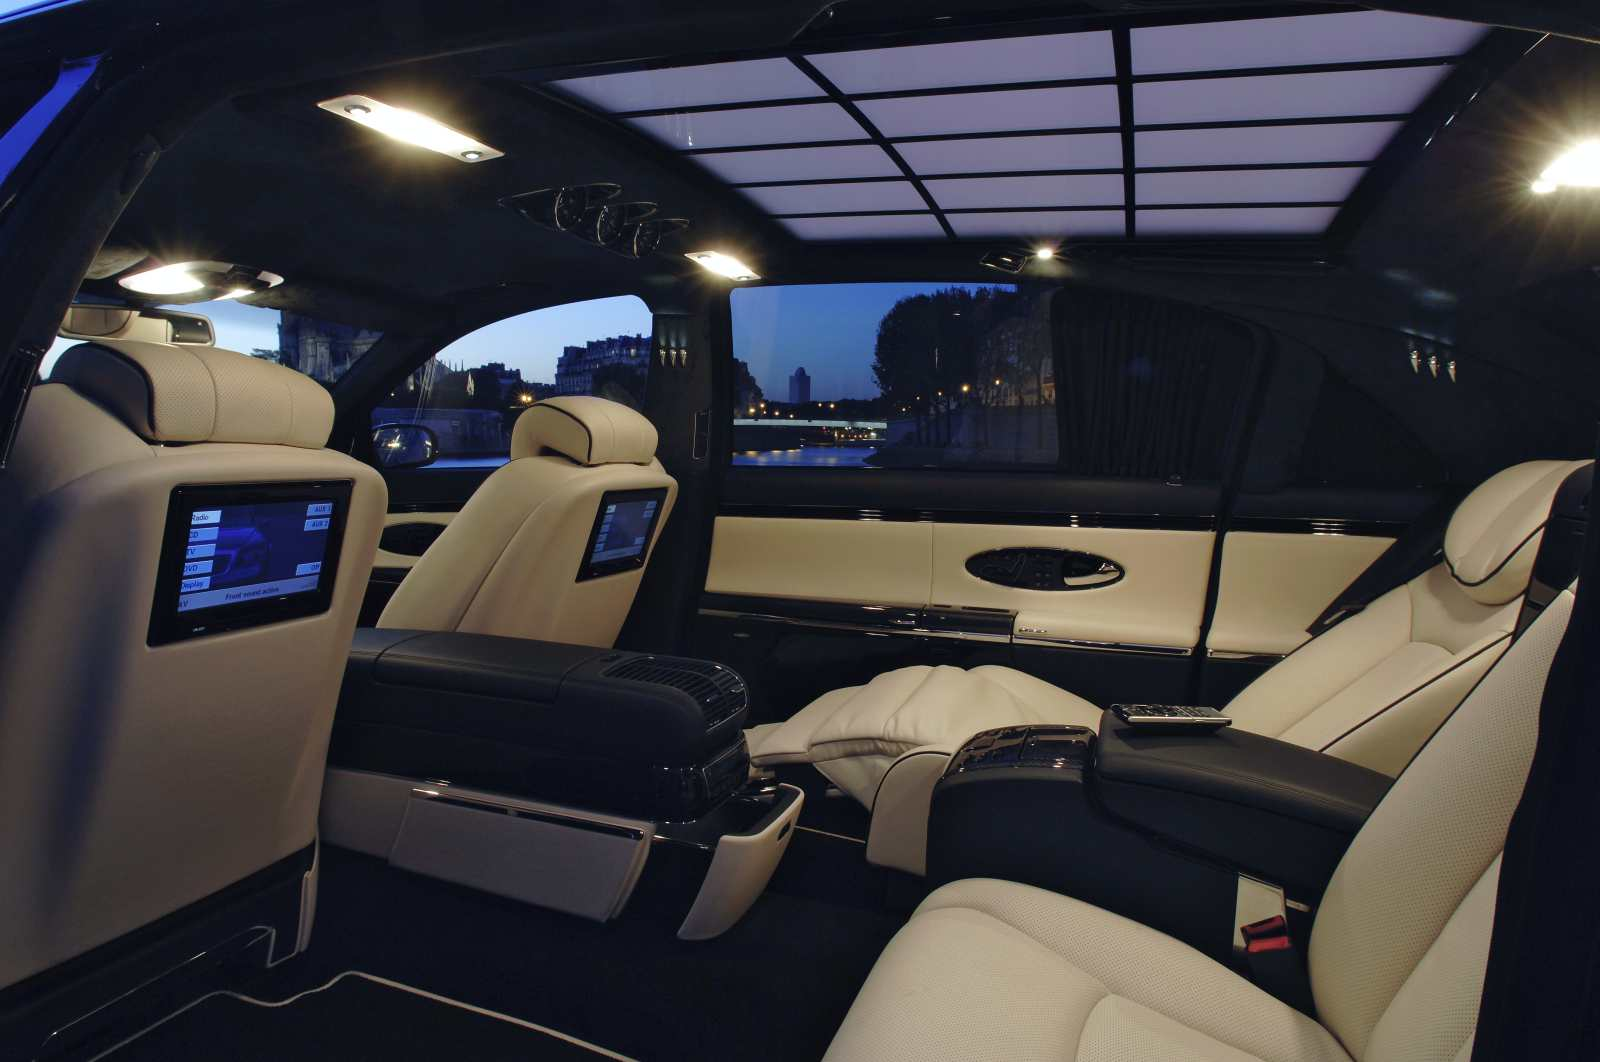 Mercedes maybach interior pictures cars n bikes for Auto interieur bekleden prijs